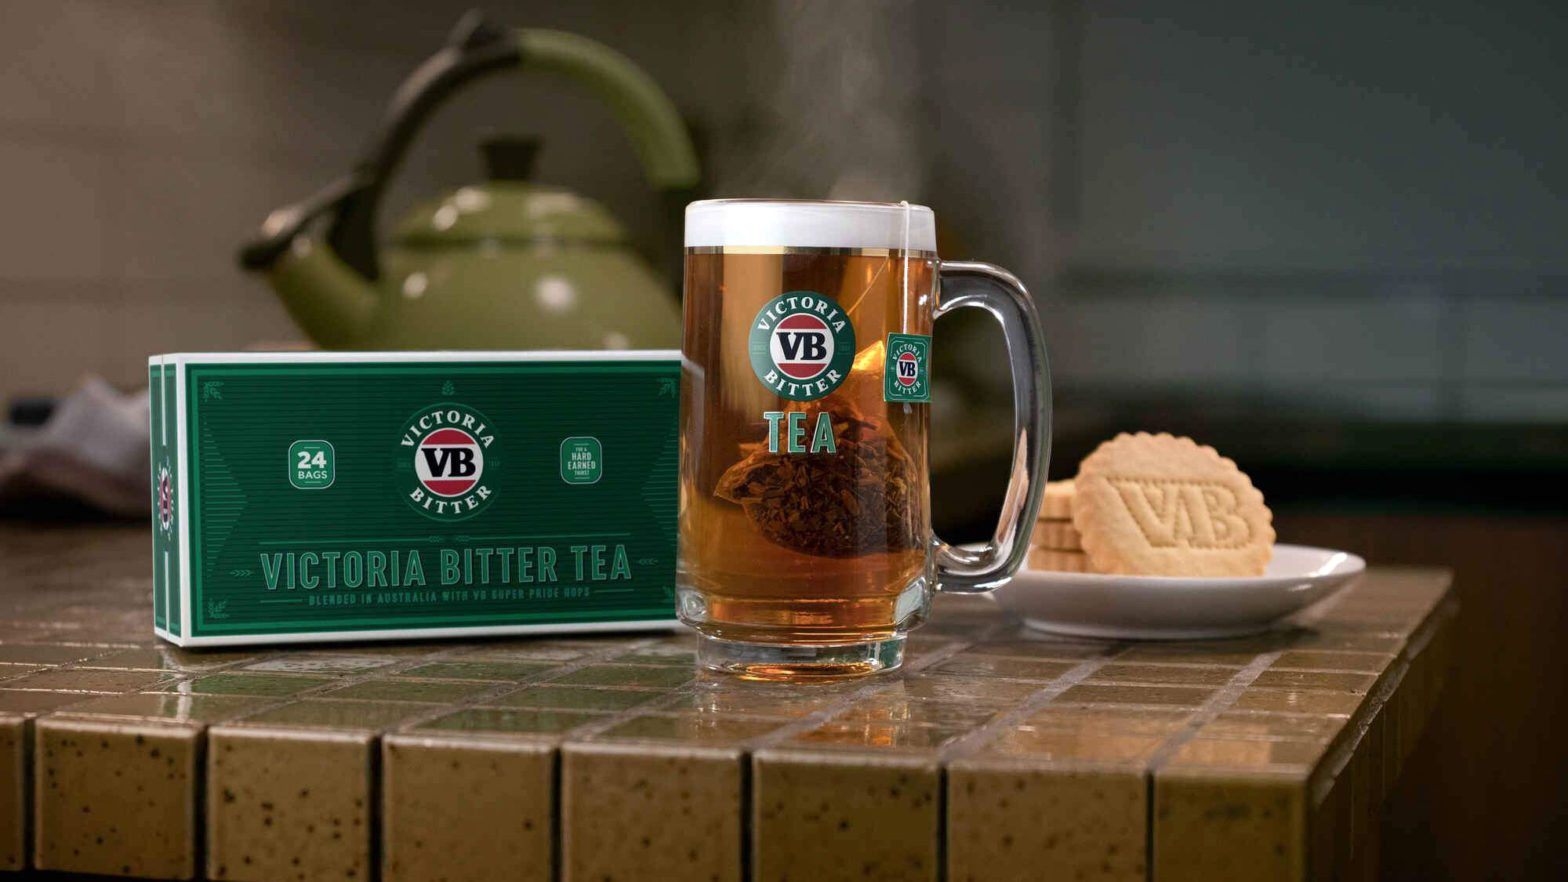 Limited Edition Victoria Bitter Tea